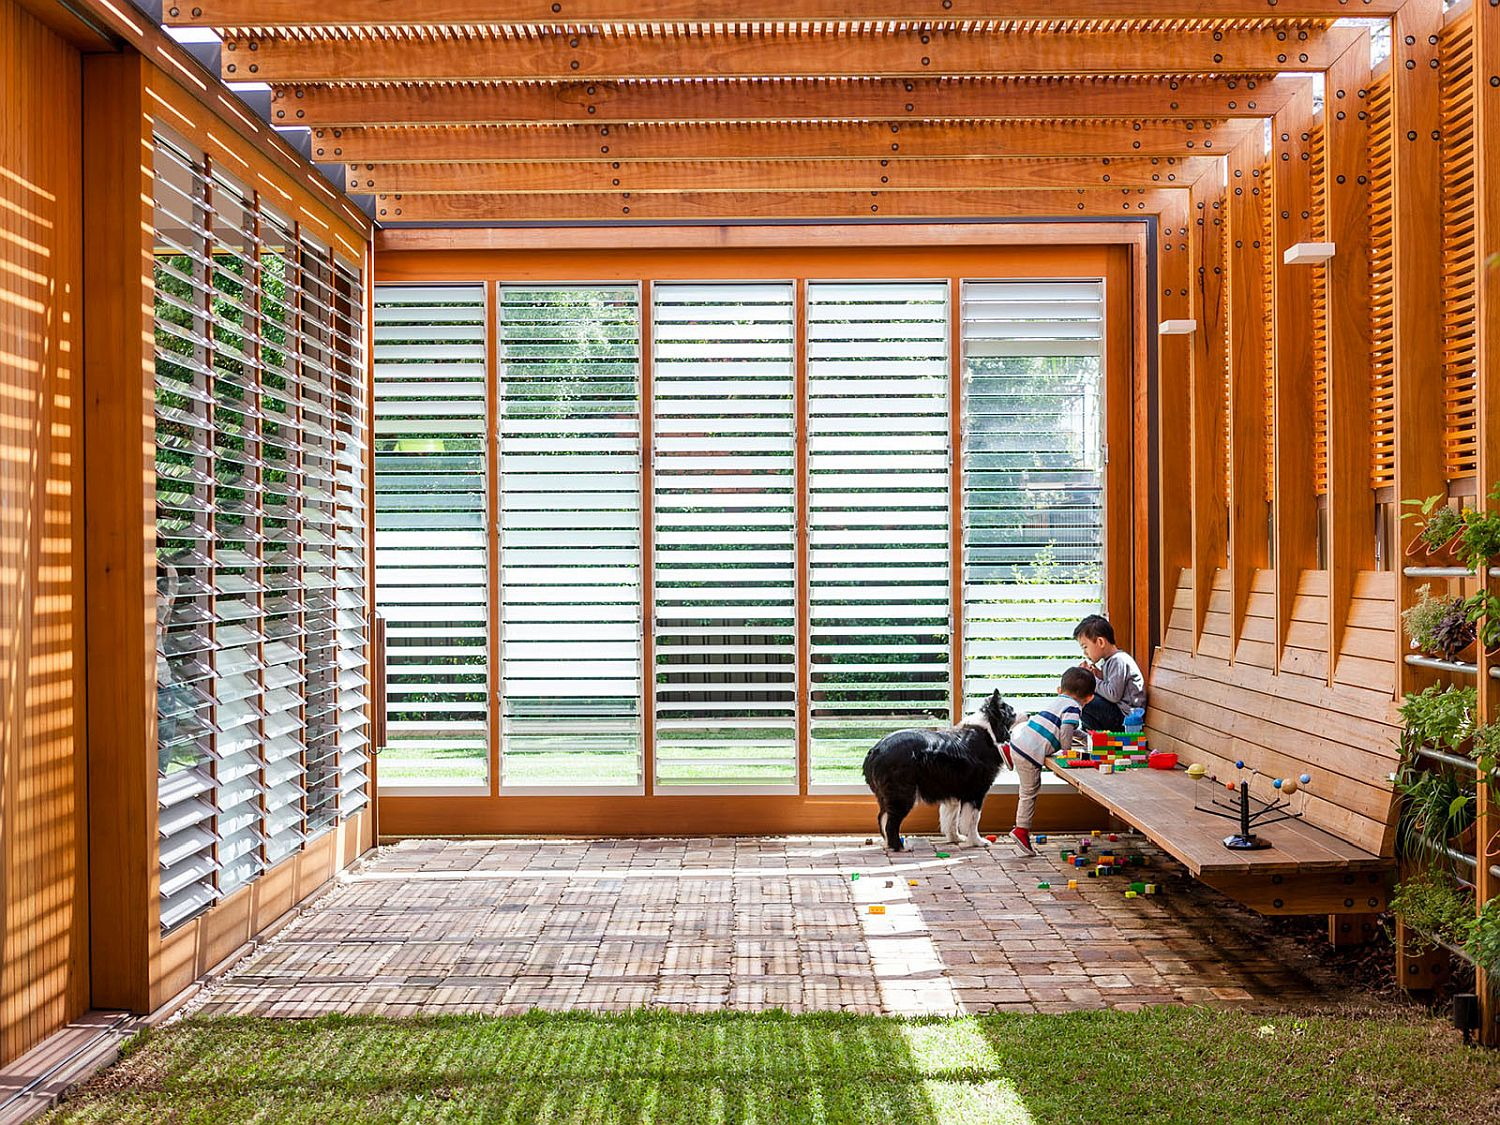 Smart use of translucent and normal glass sliding doors brings in plenty of natural light